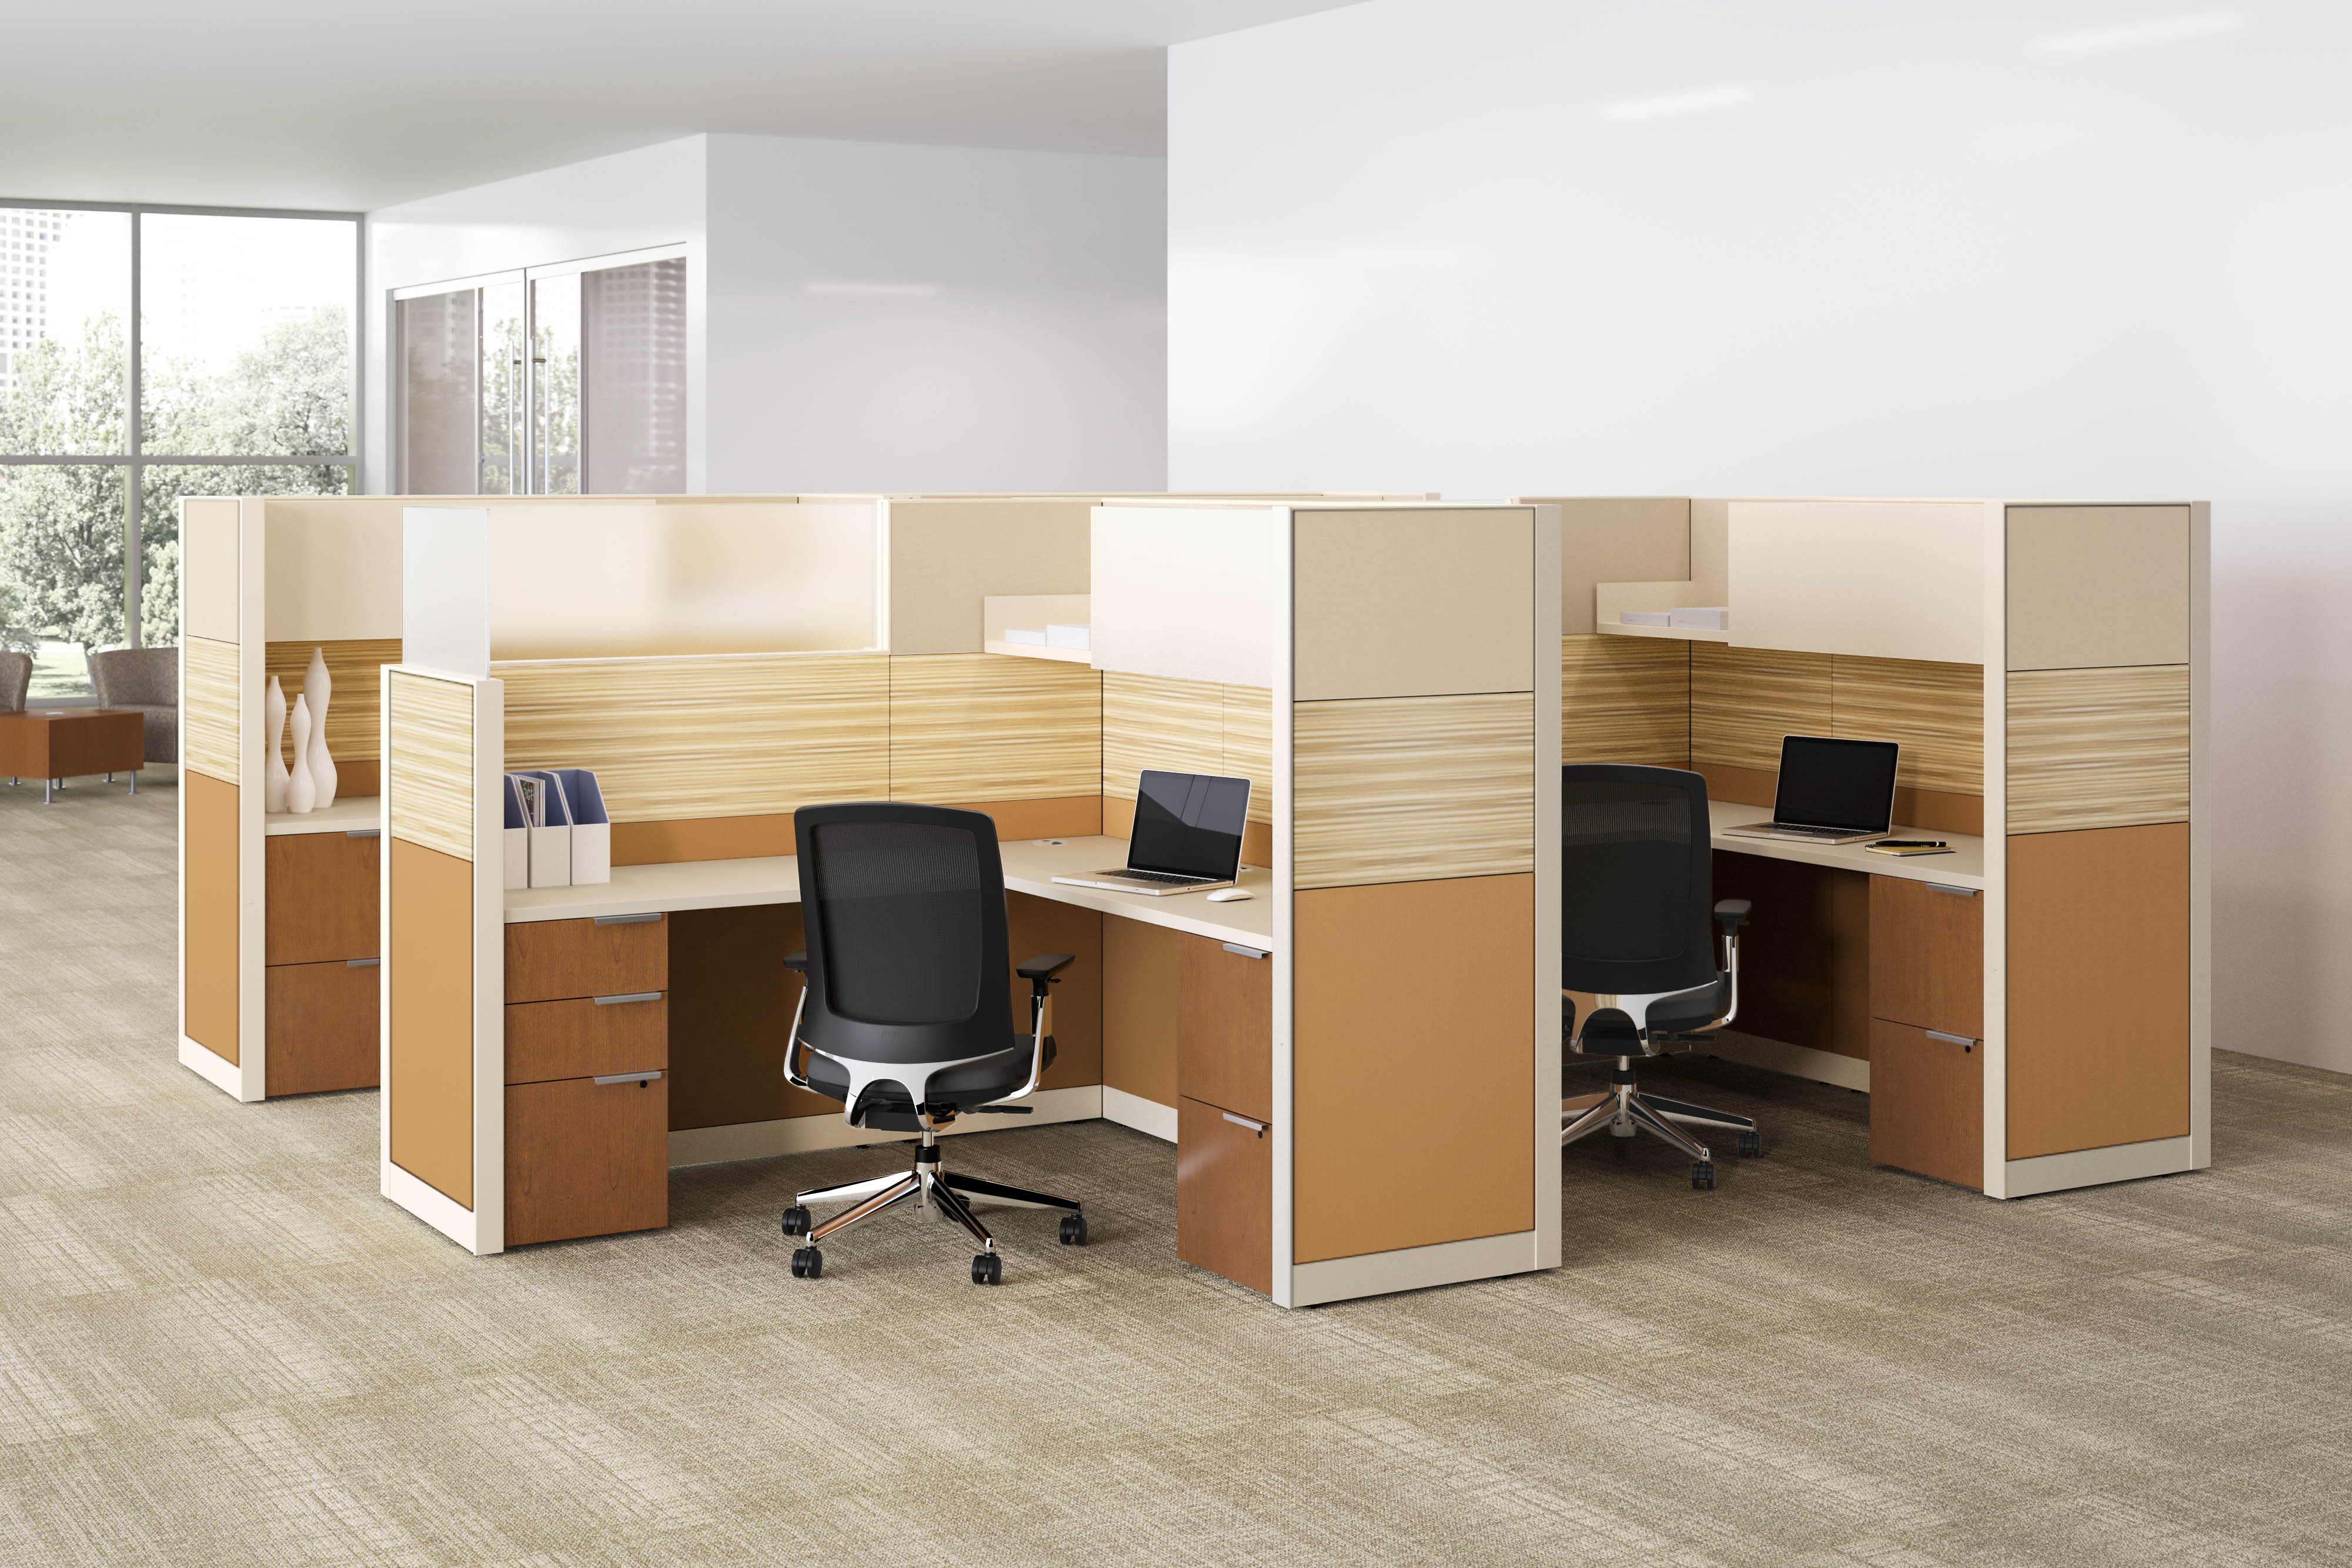 61 Invincible Office Furniture Solutions Leading Designer And Manufacturer Of High